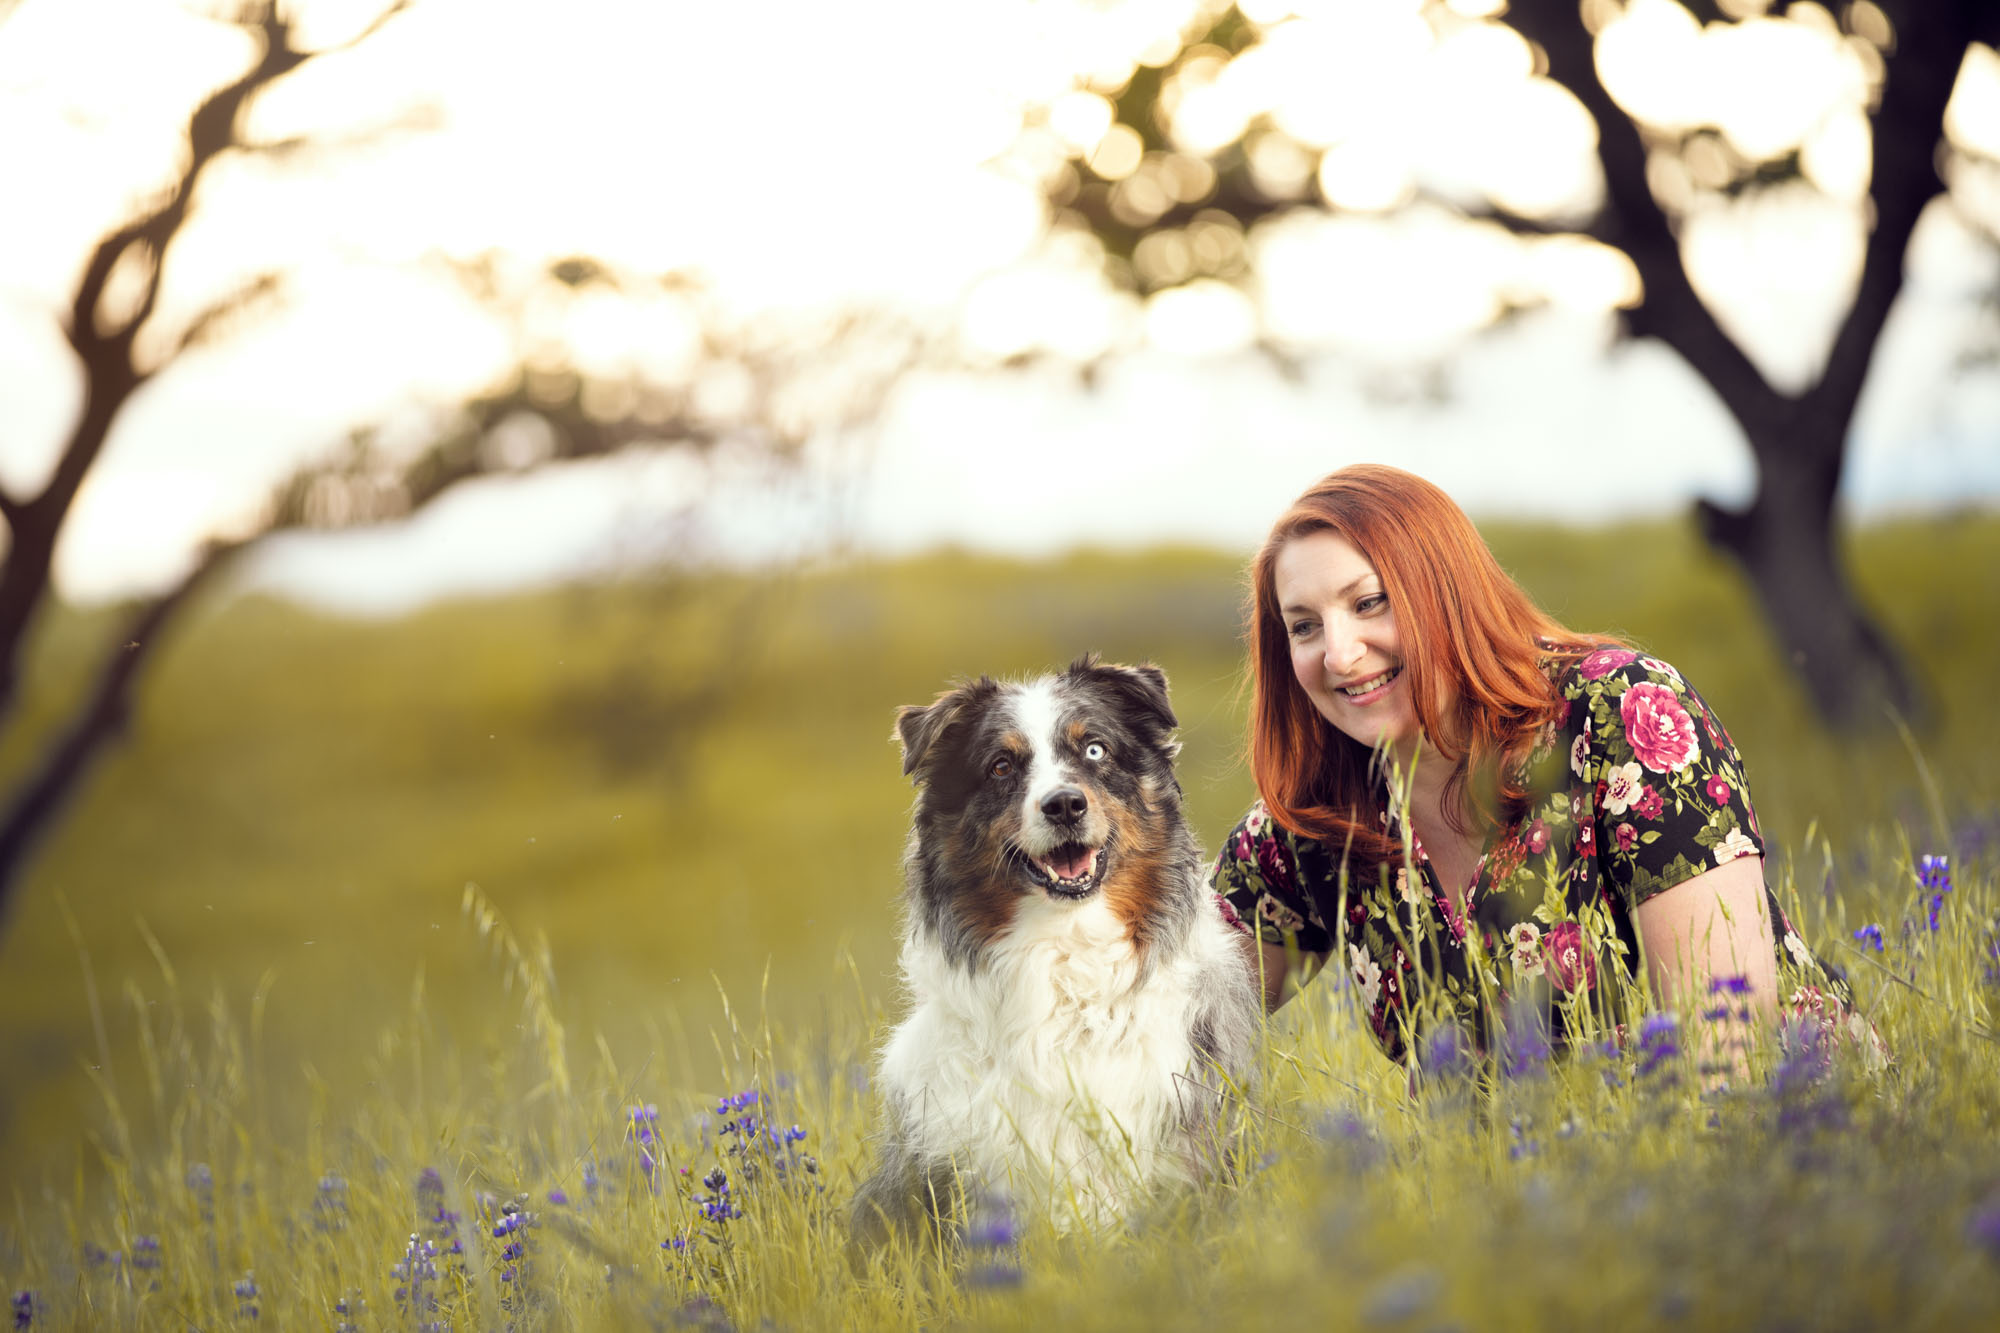 Outdoor portrait photo shoot of a woman and her dog by Jason Guy